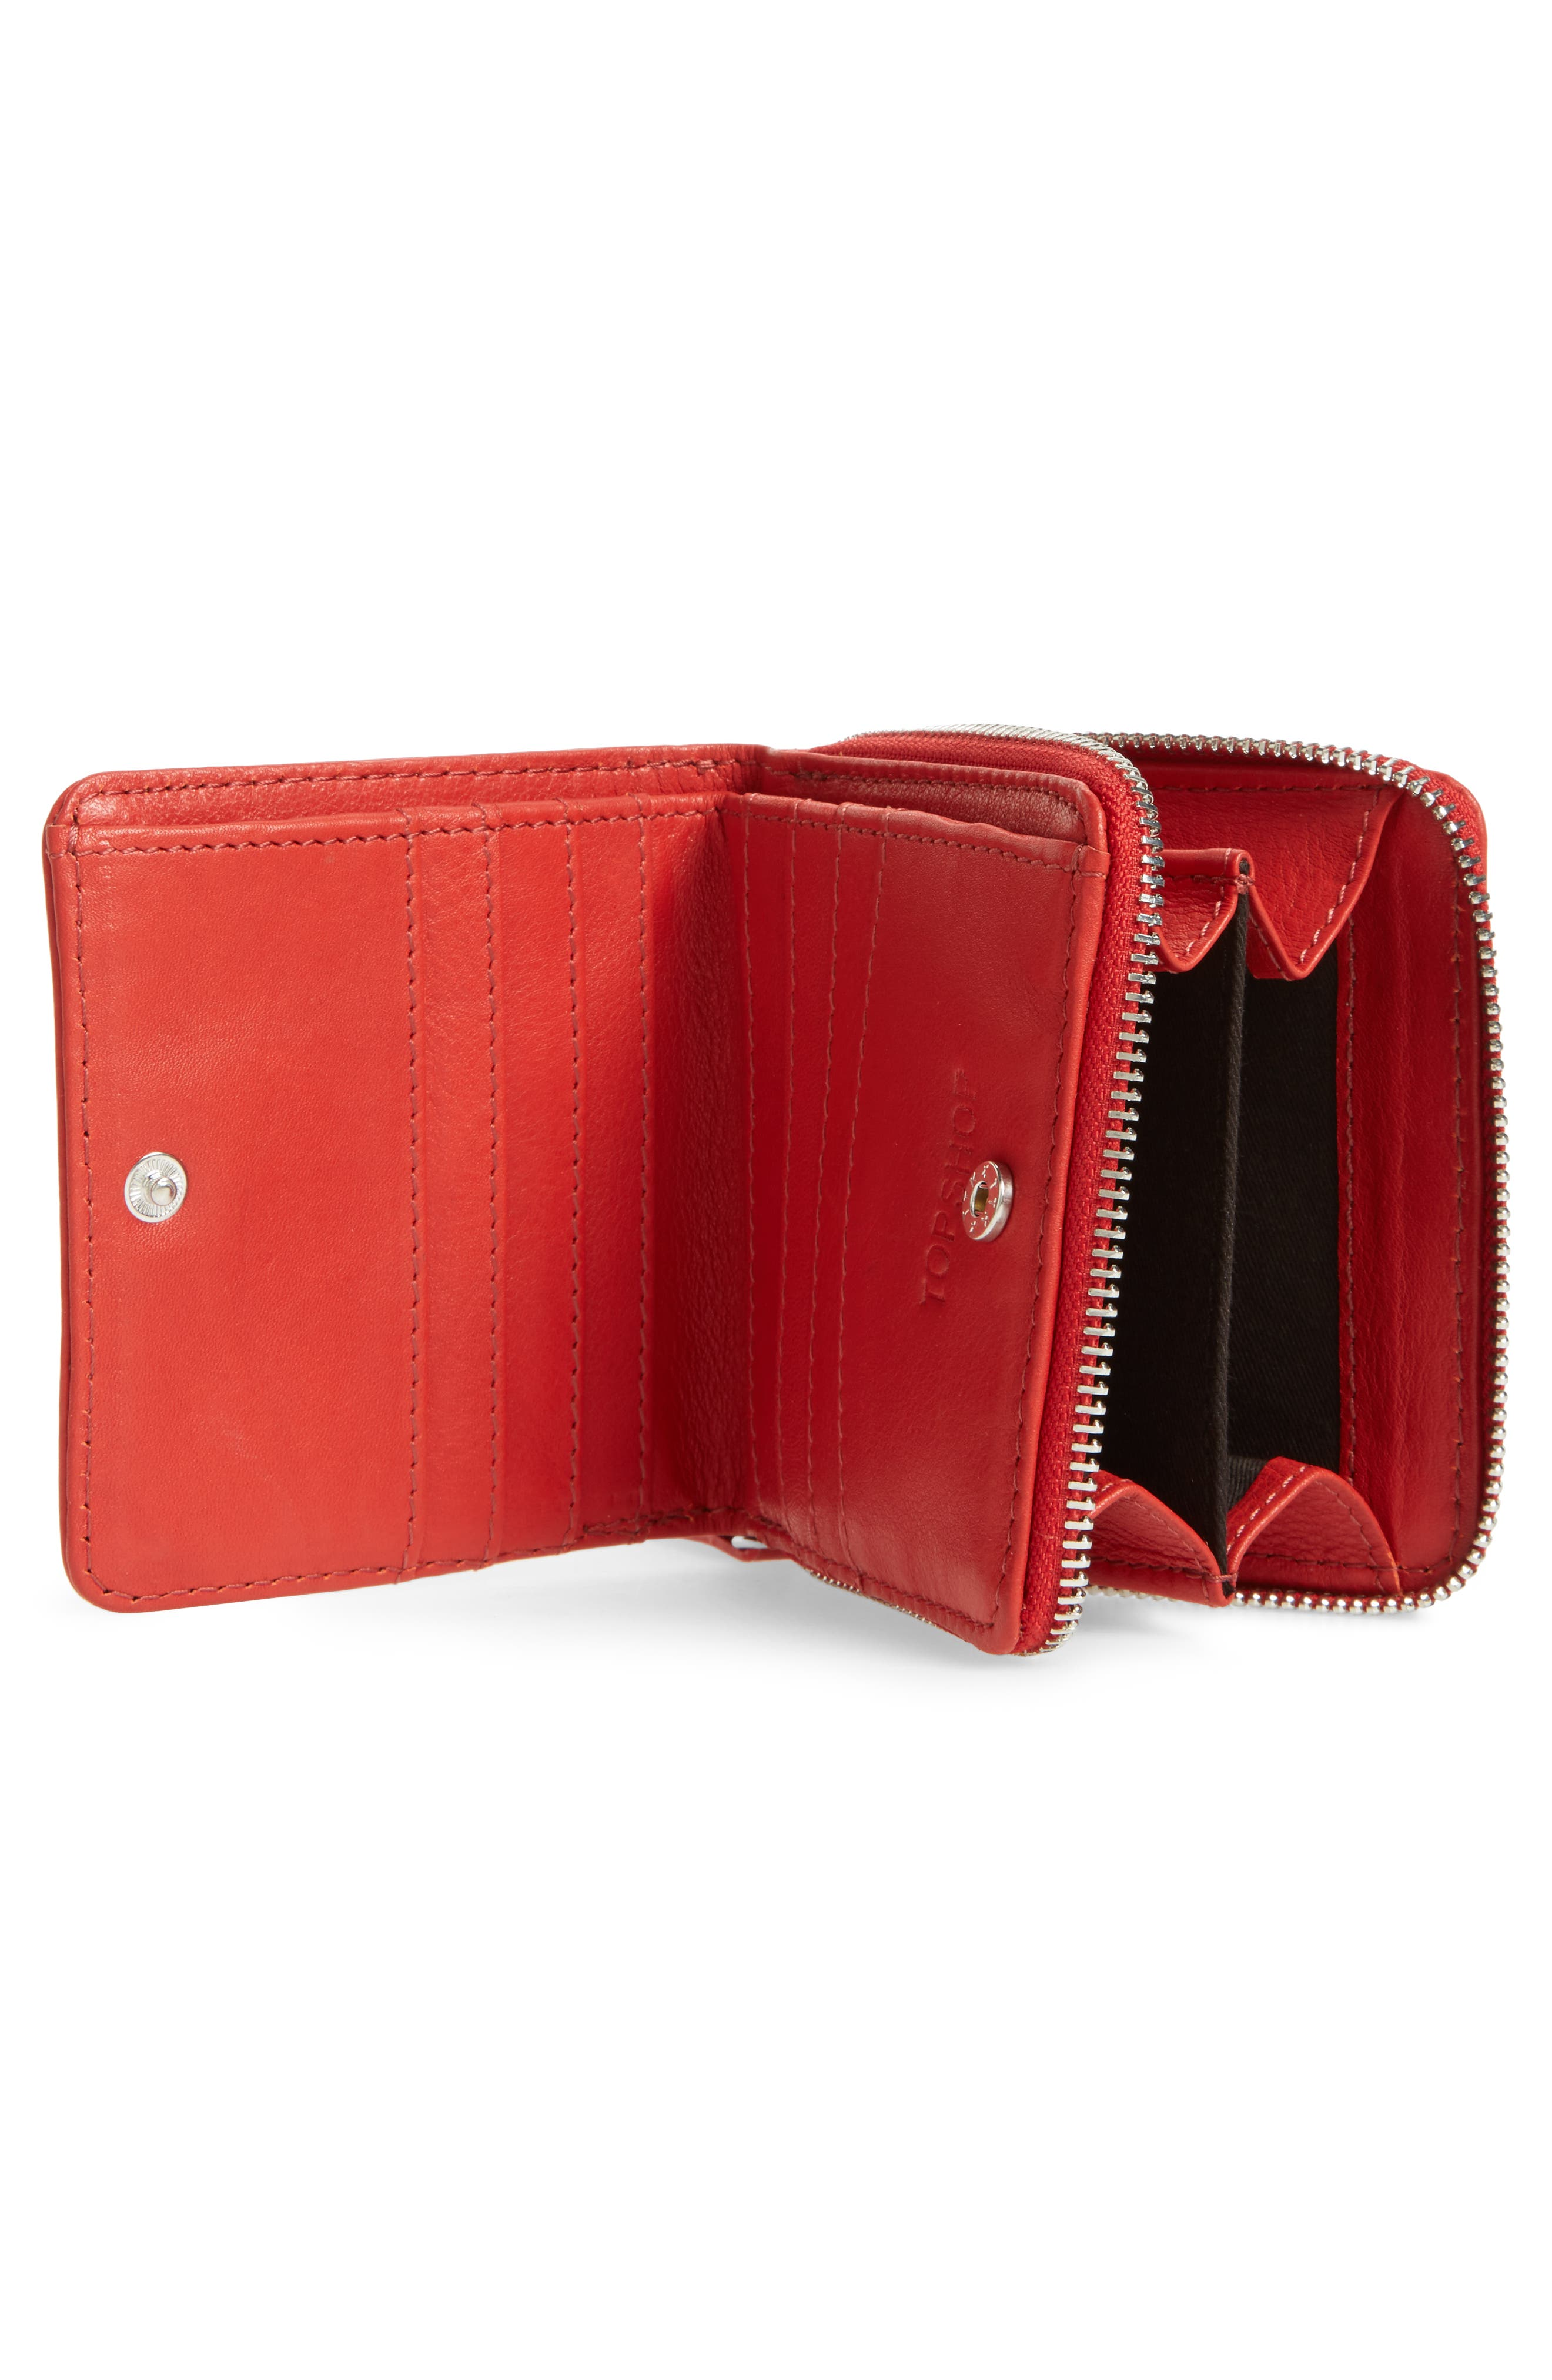 Leather Zip Around Wallet,                             Alternate thumbnail 2, color,                             Red